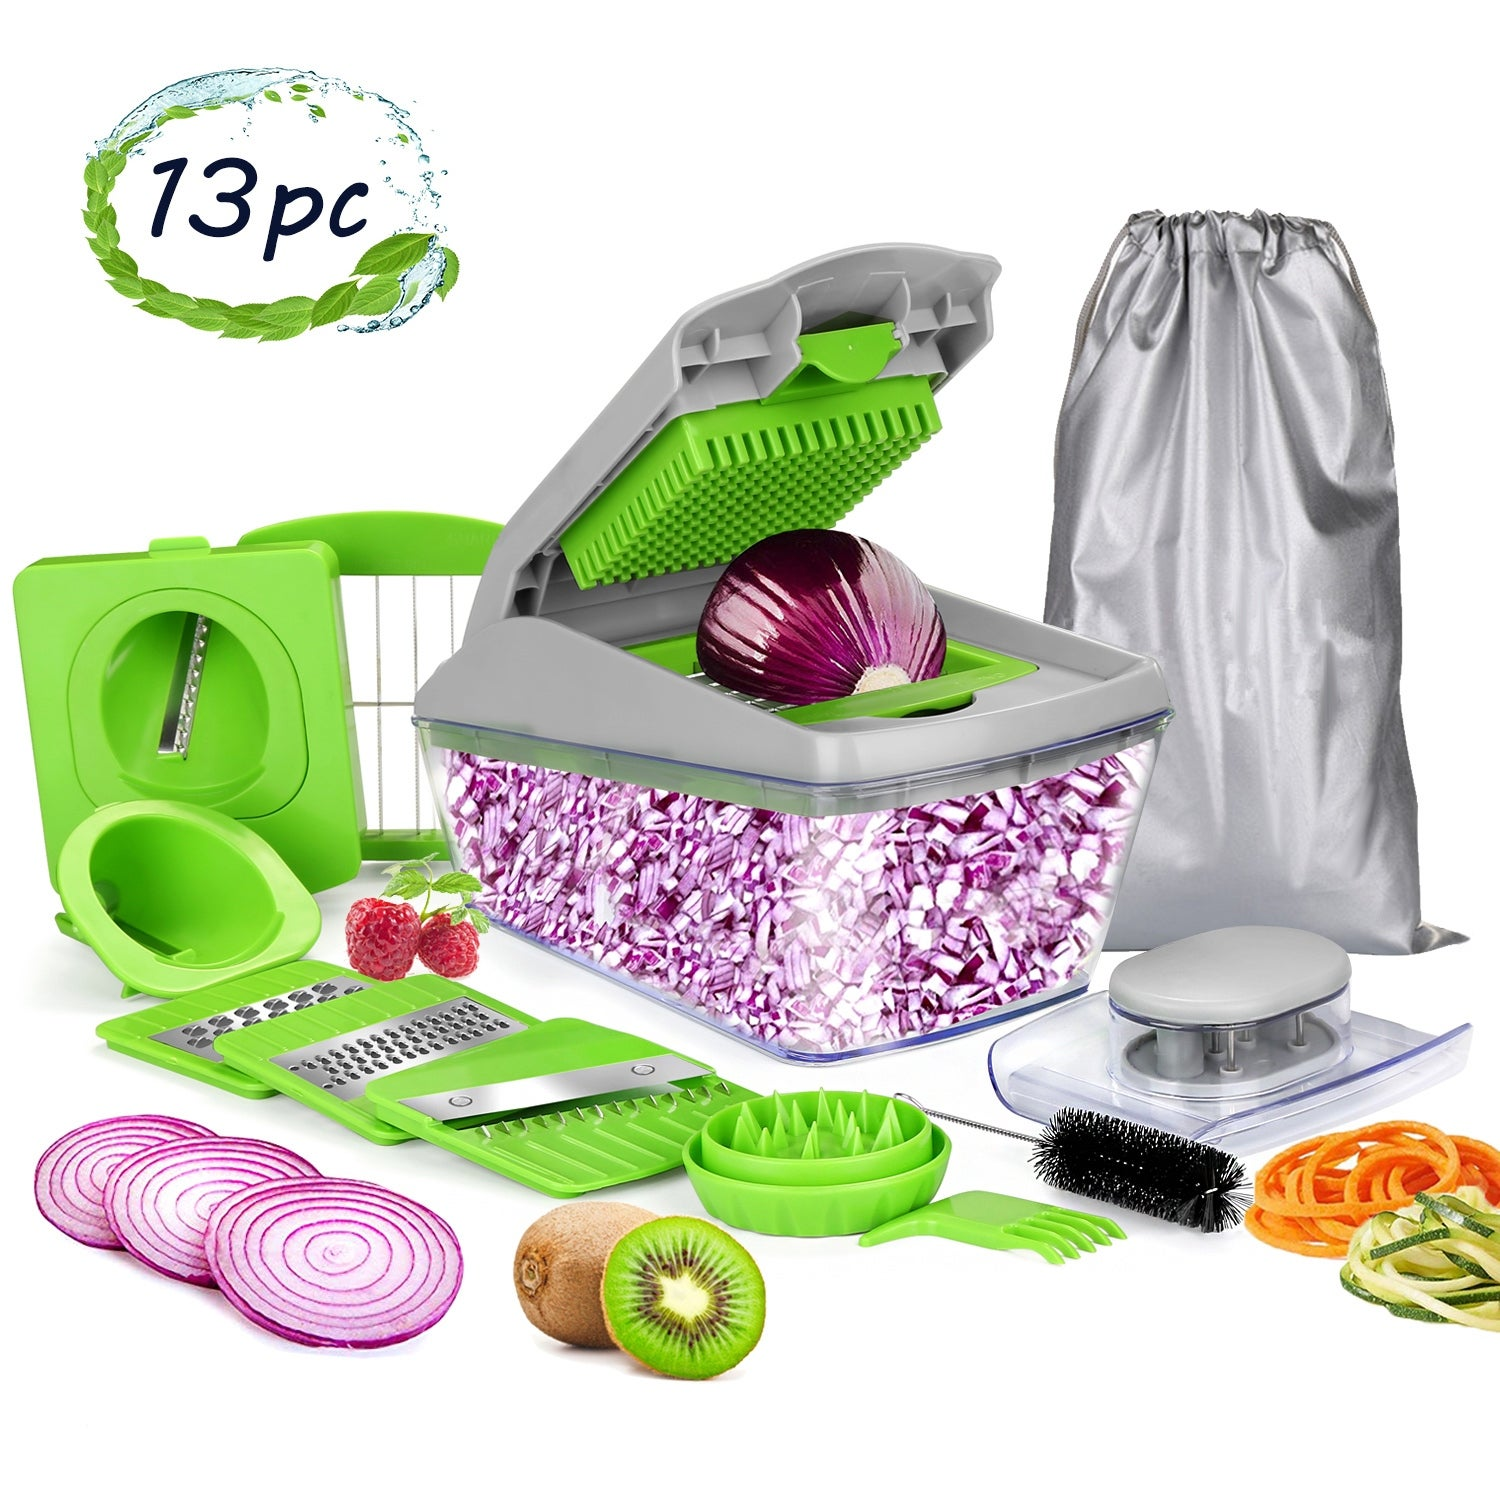 Onion chopper Mandoline Slicer with Stainless steel blade Include Clean Brush and Hand Guard Made in USA Vegetable chopper Black